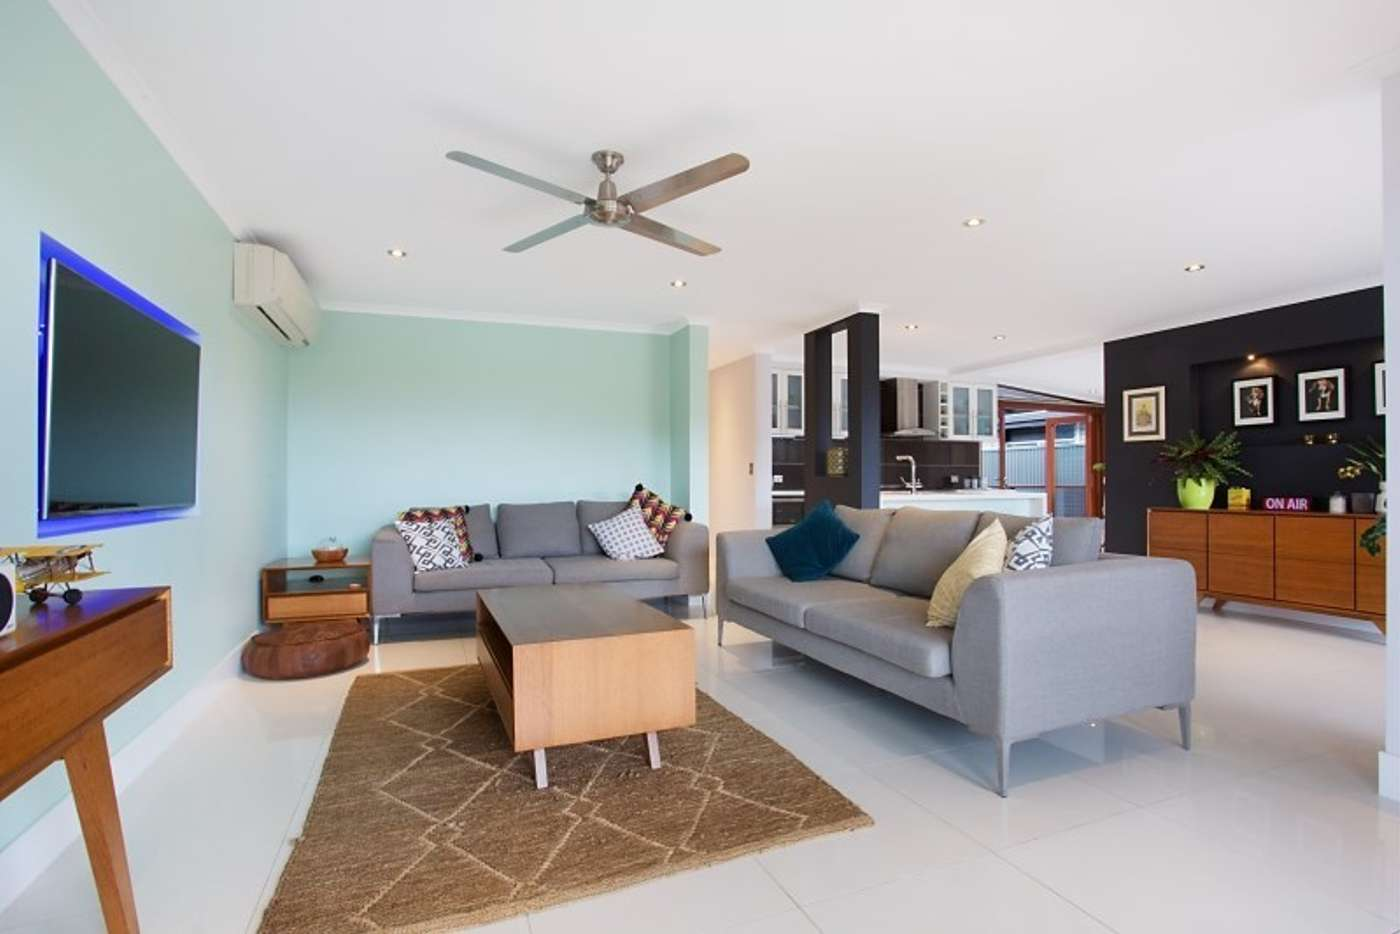 Main view of Homely house listing, 36 Cooleroo Crescent, Southport QLD 4215